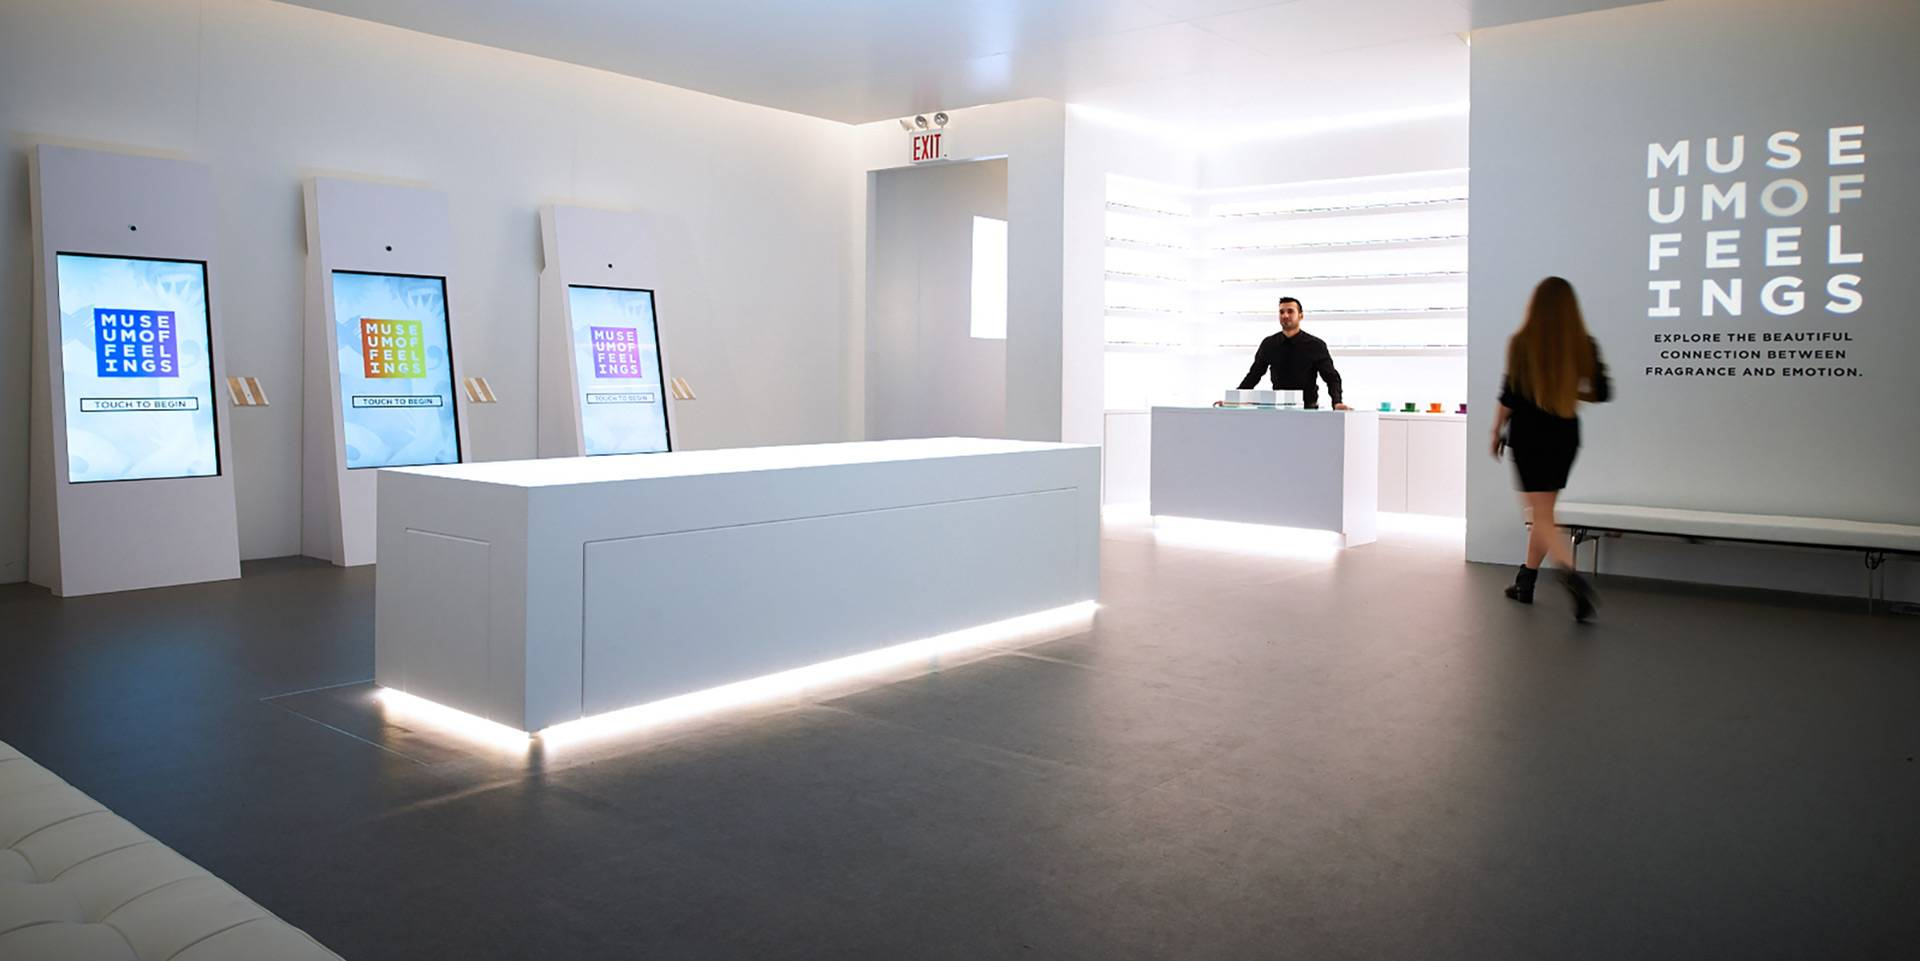 Museum of Feelings: Retail Experience, Interactive Scent Table & Mood Kiosks